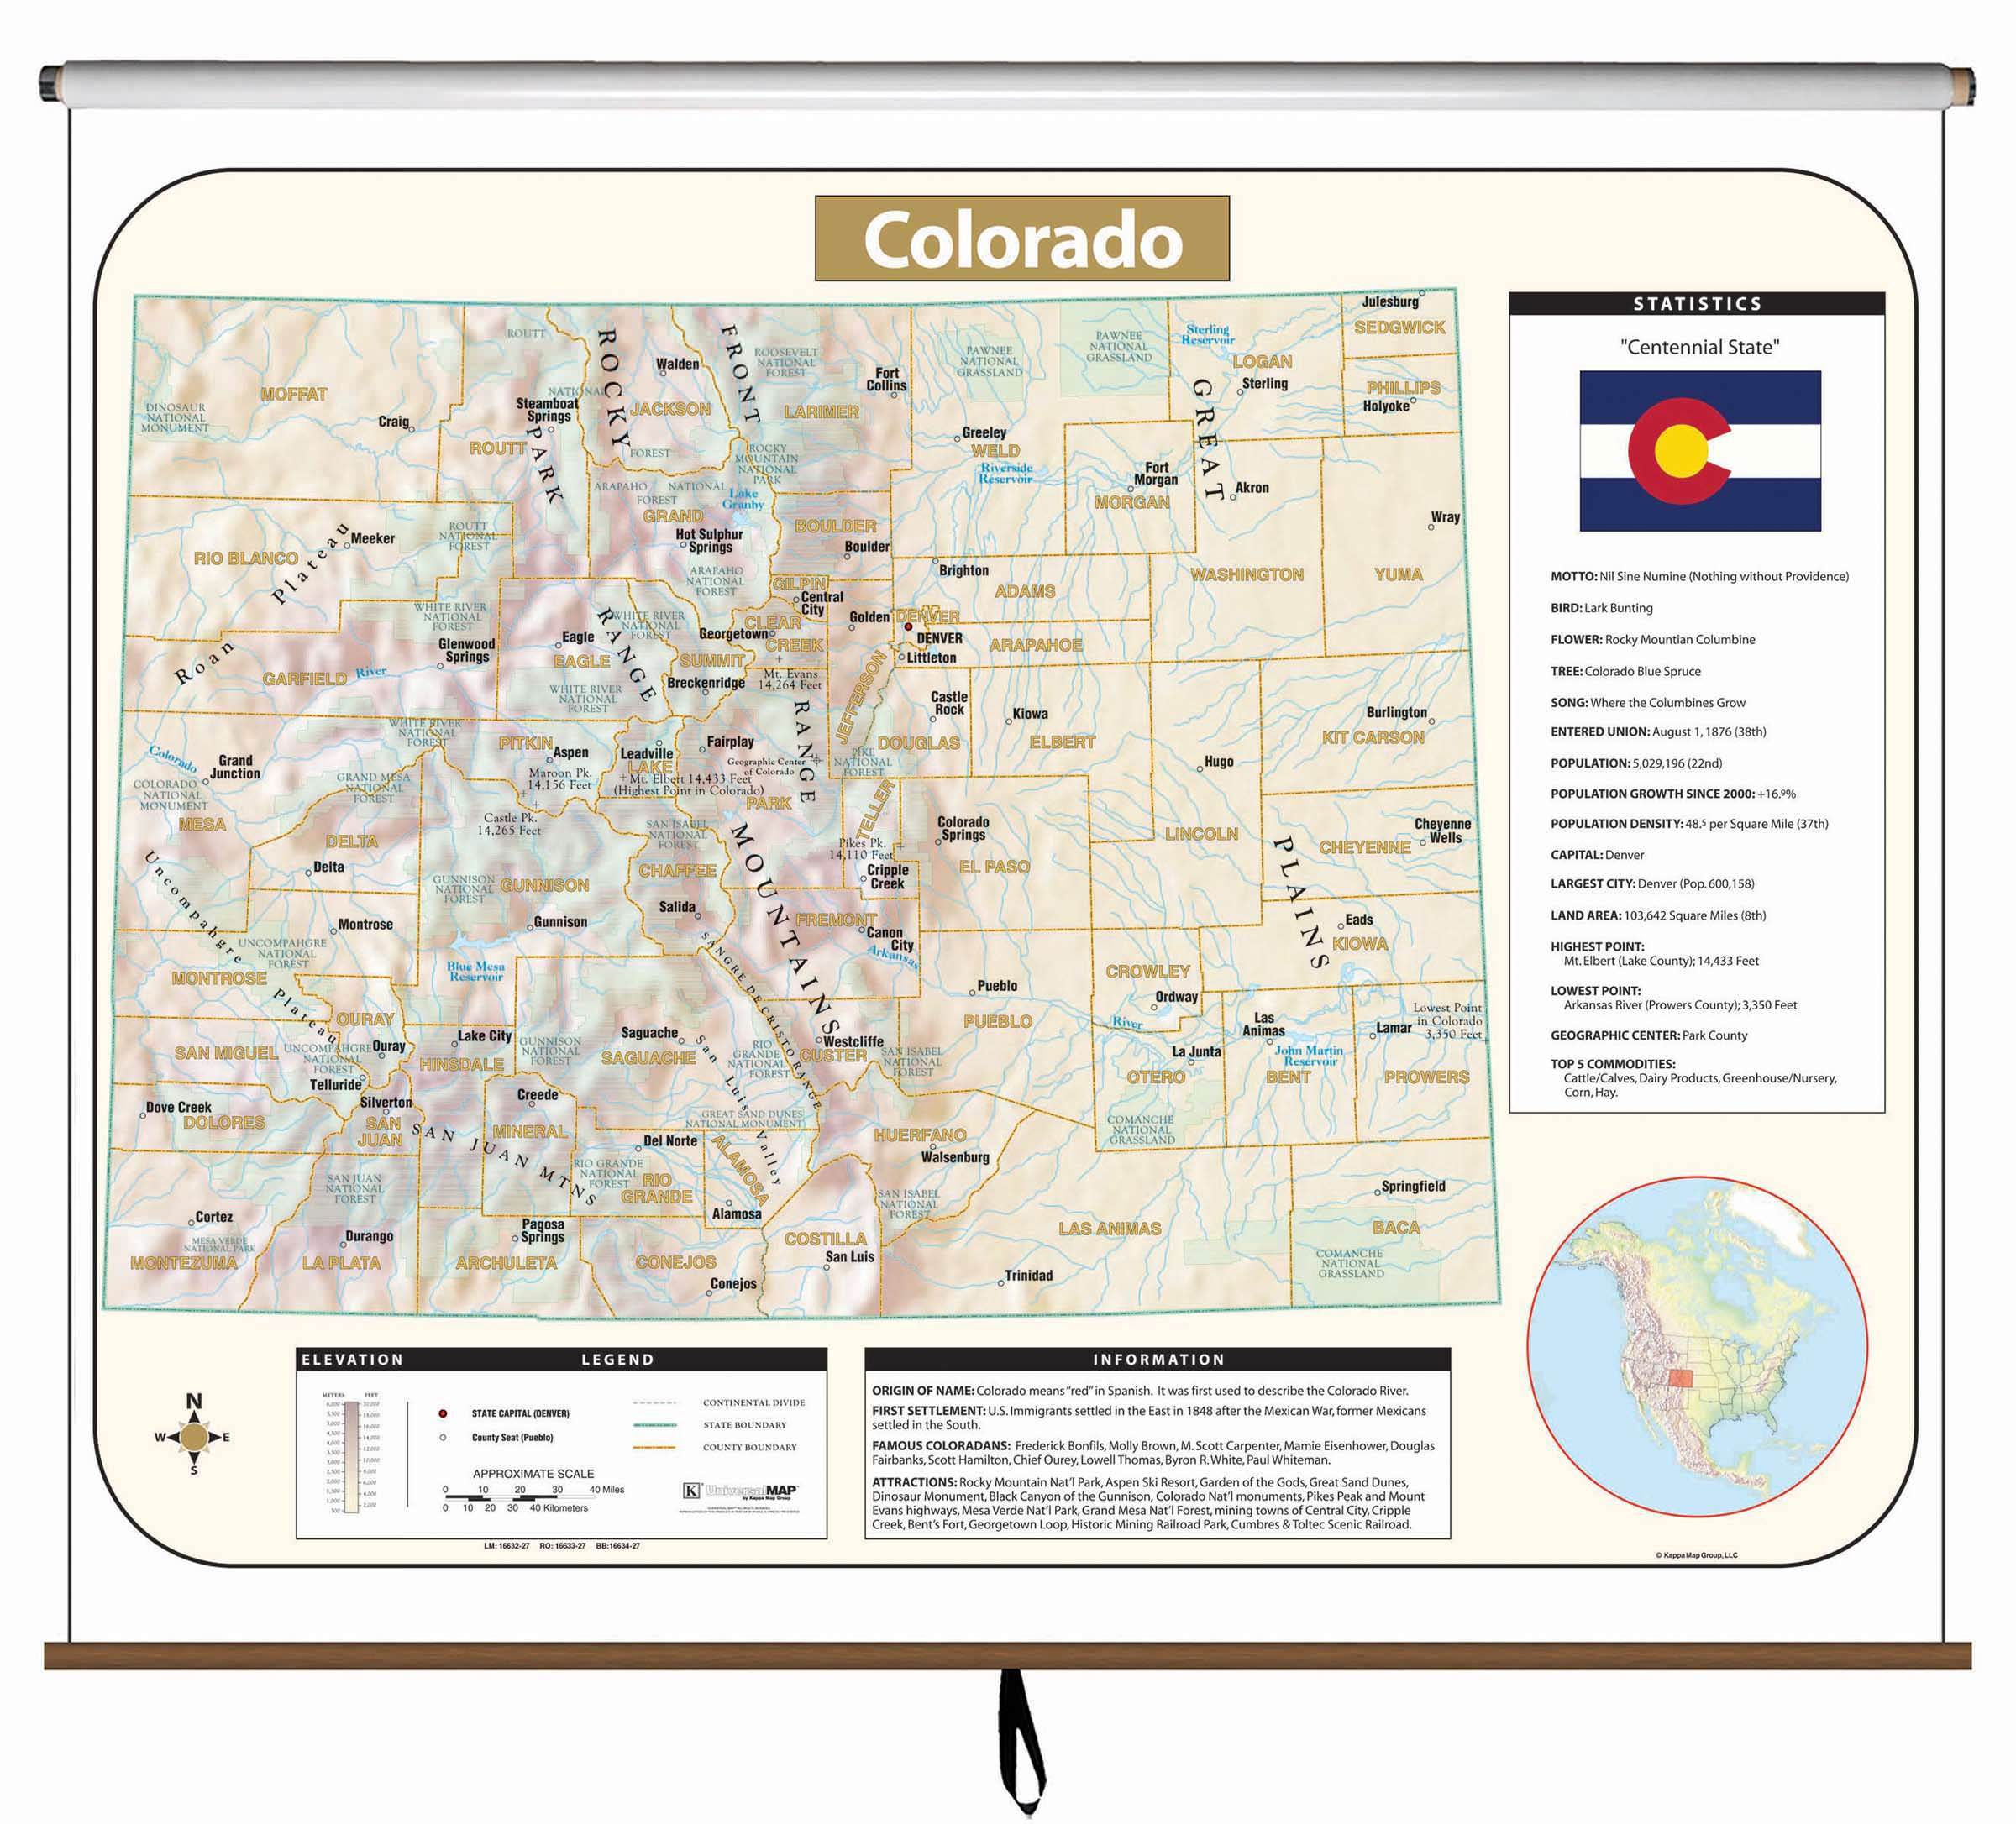 Colorado Large Scale Shaded Relief Wall Map on Roller KAPPA MAP GROUP